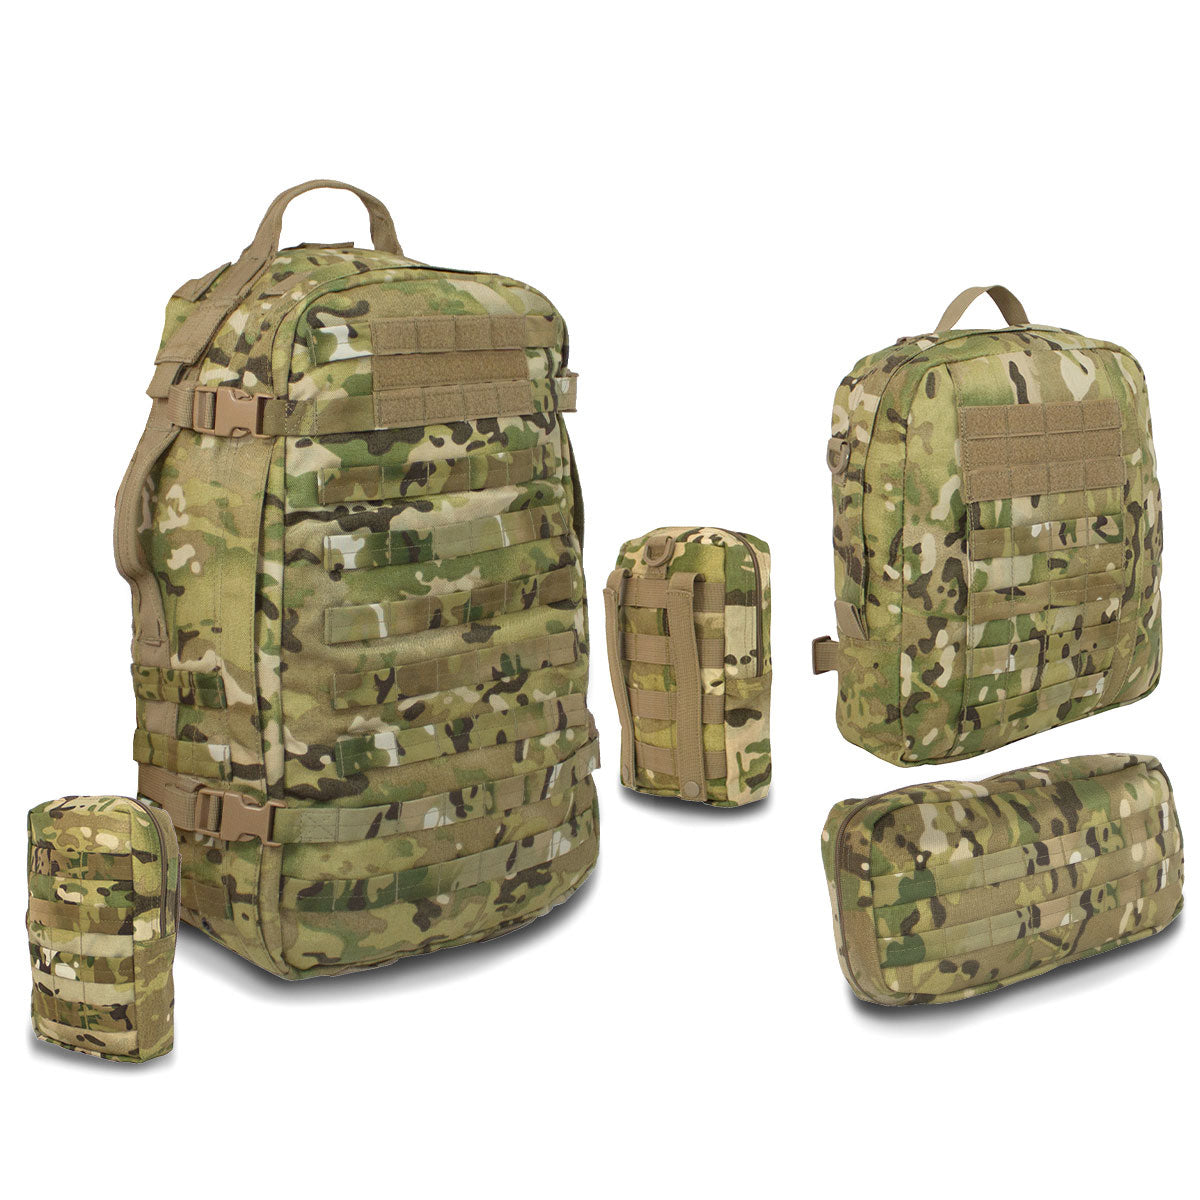 Lycan Pack 55L - Bulldog Tactical Gear